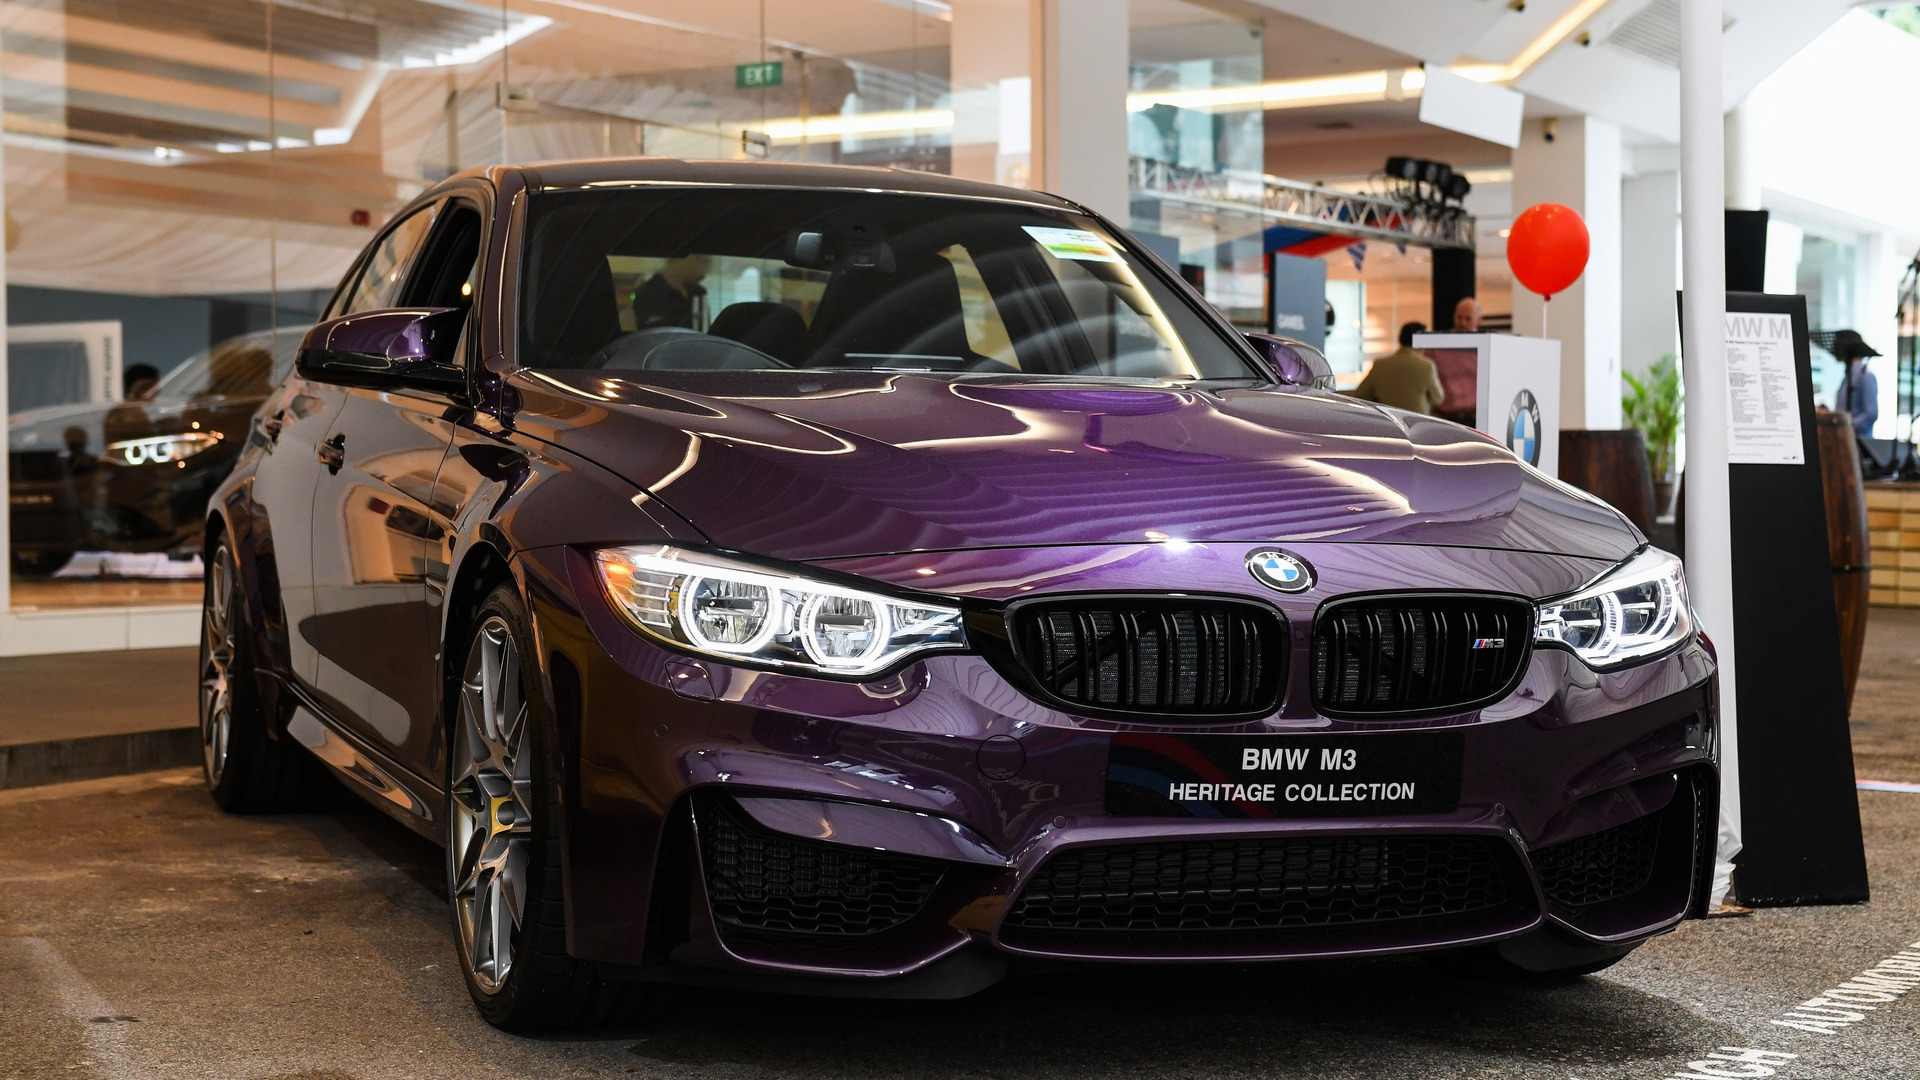 BMW M3 Heritage Collection Singapore Edition